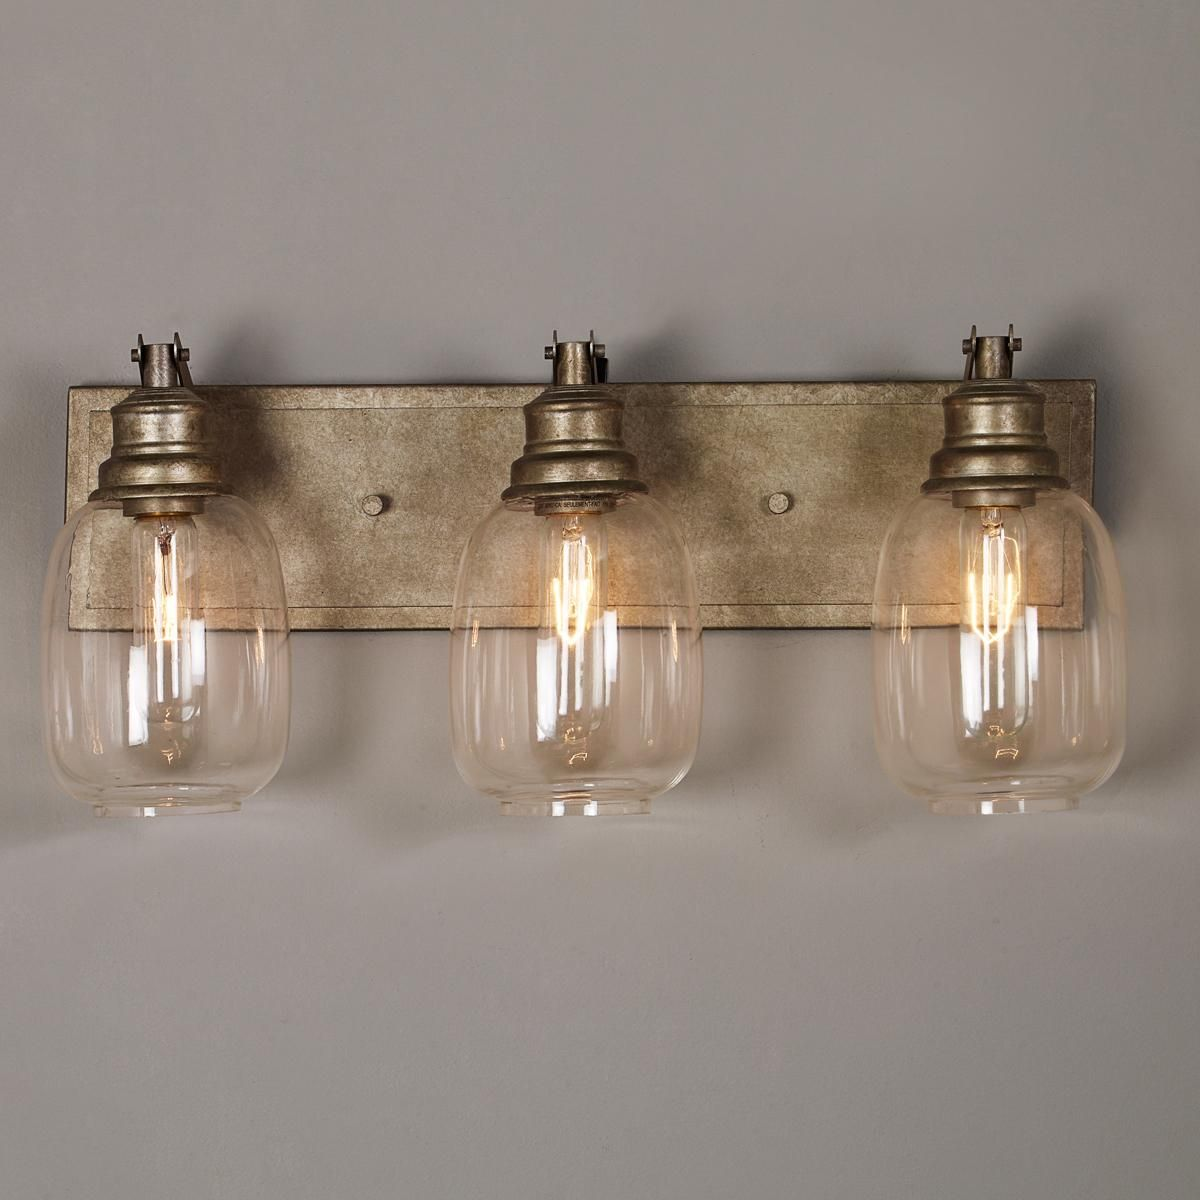 Image of: Industrial Bath Lighting Inside Trade Winds Lighting 4light Industrial Bath Bar Oil Rubbed Bronze Bathroom 50 Most Popular Vanity Lights For 2018 Houzz